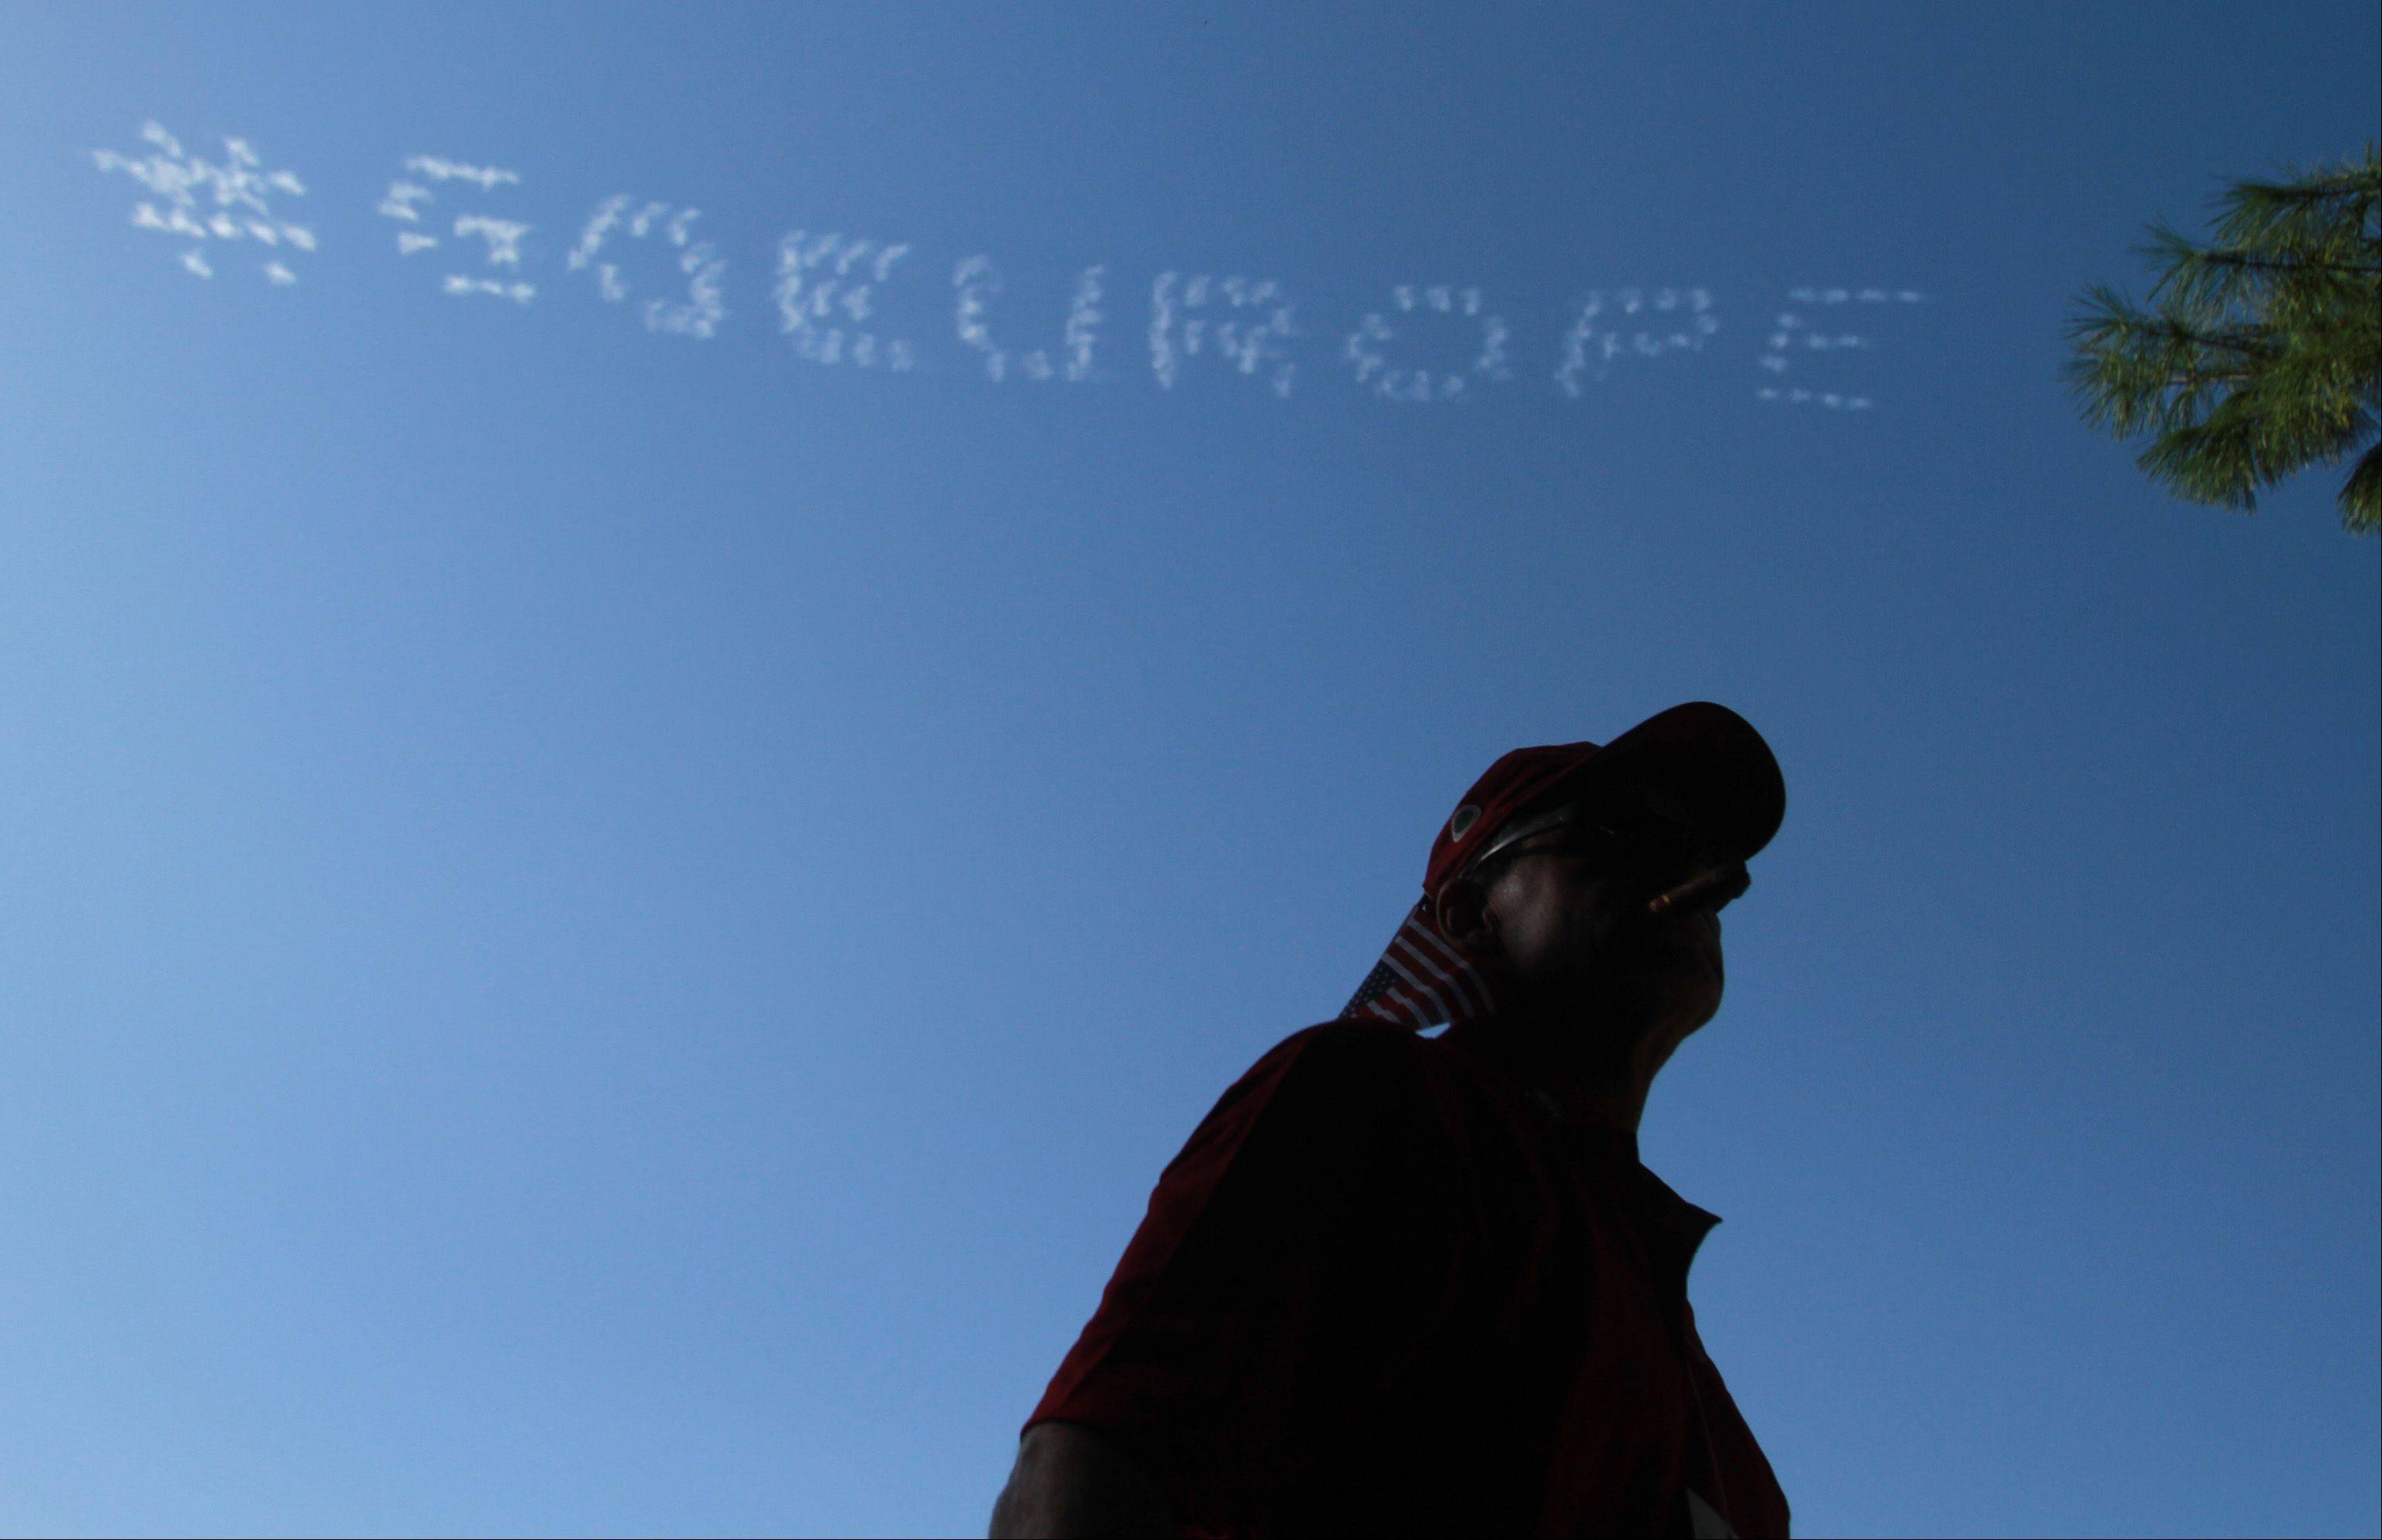 Skywriting planes painted the skies over Medinah with messages for the European team Saturday afternoon as a fan takes in the golf action.